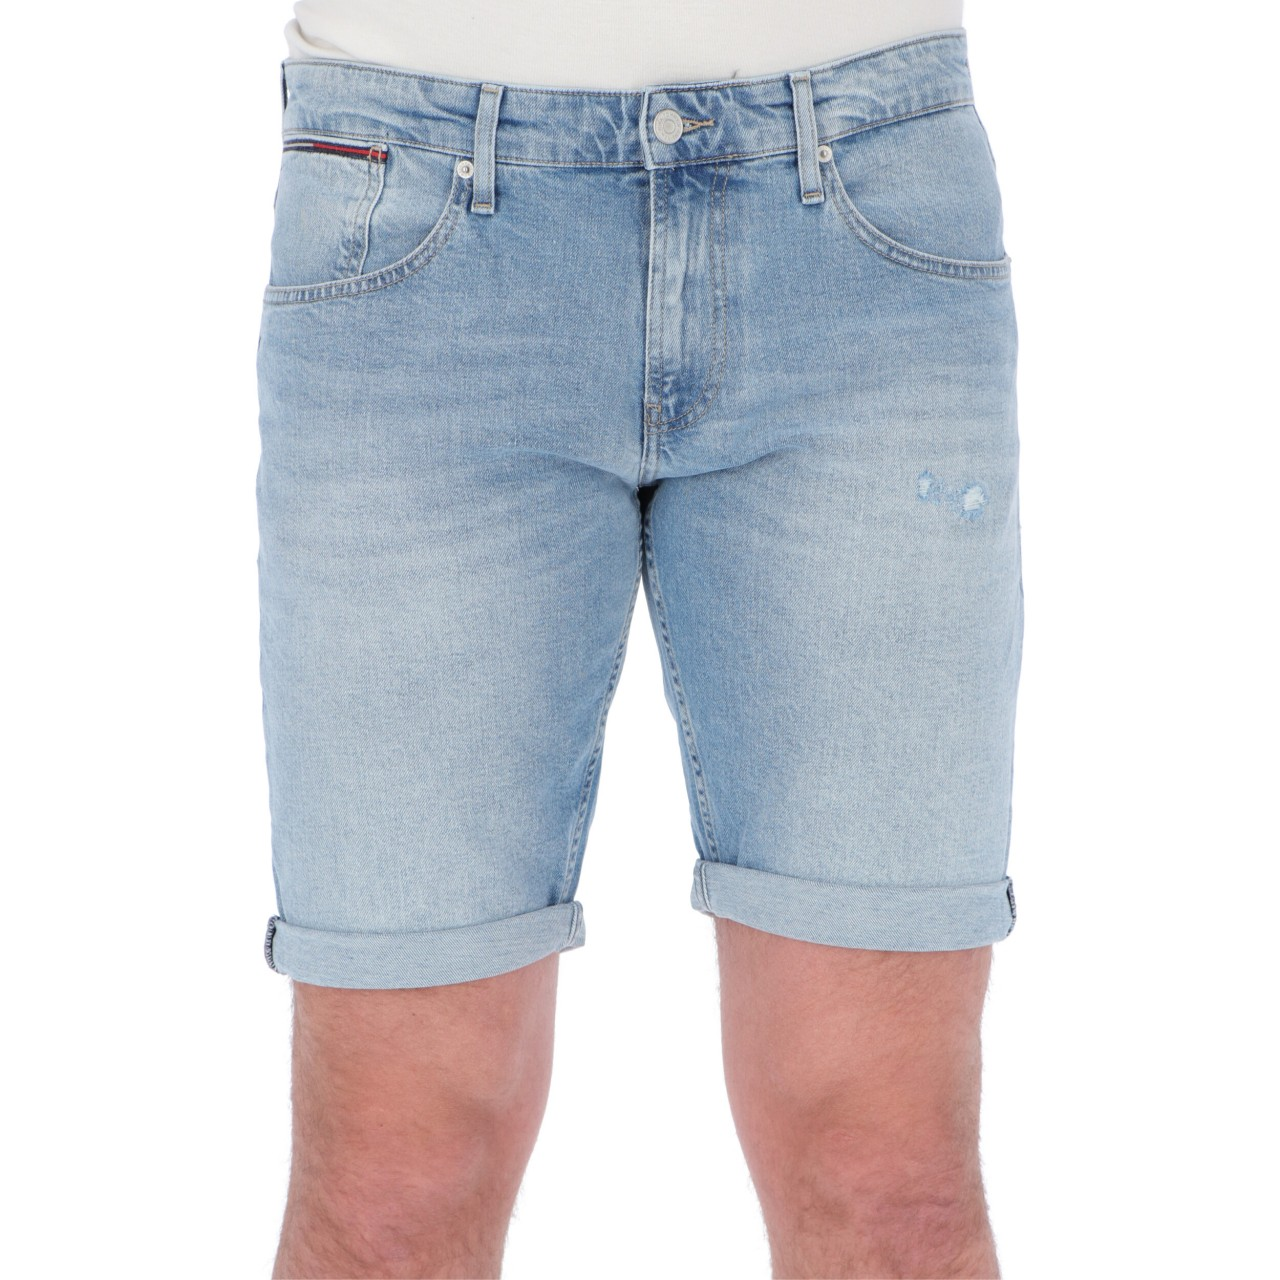 Tommy hilfiger Uomo Shorts Tommy Hilfiger Jeans Uomo Ronnie Relaxed Denim 10555P